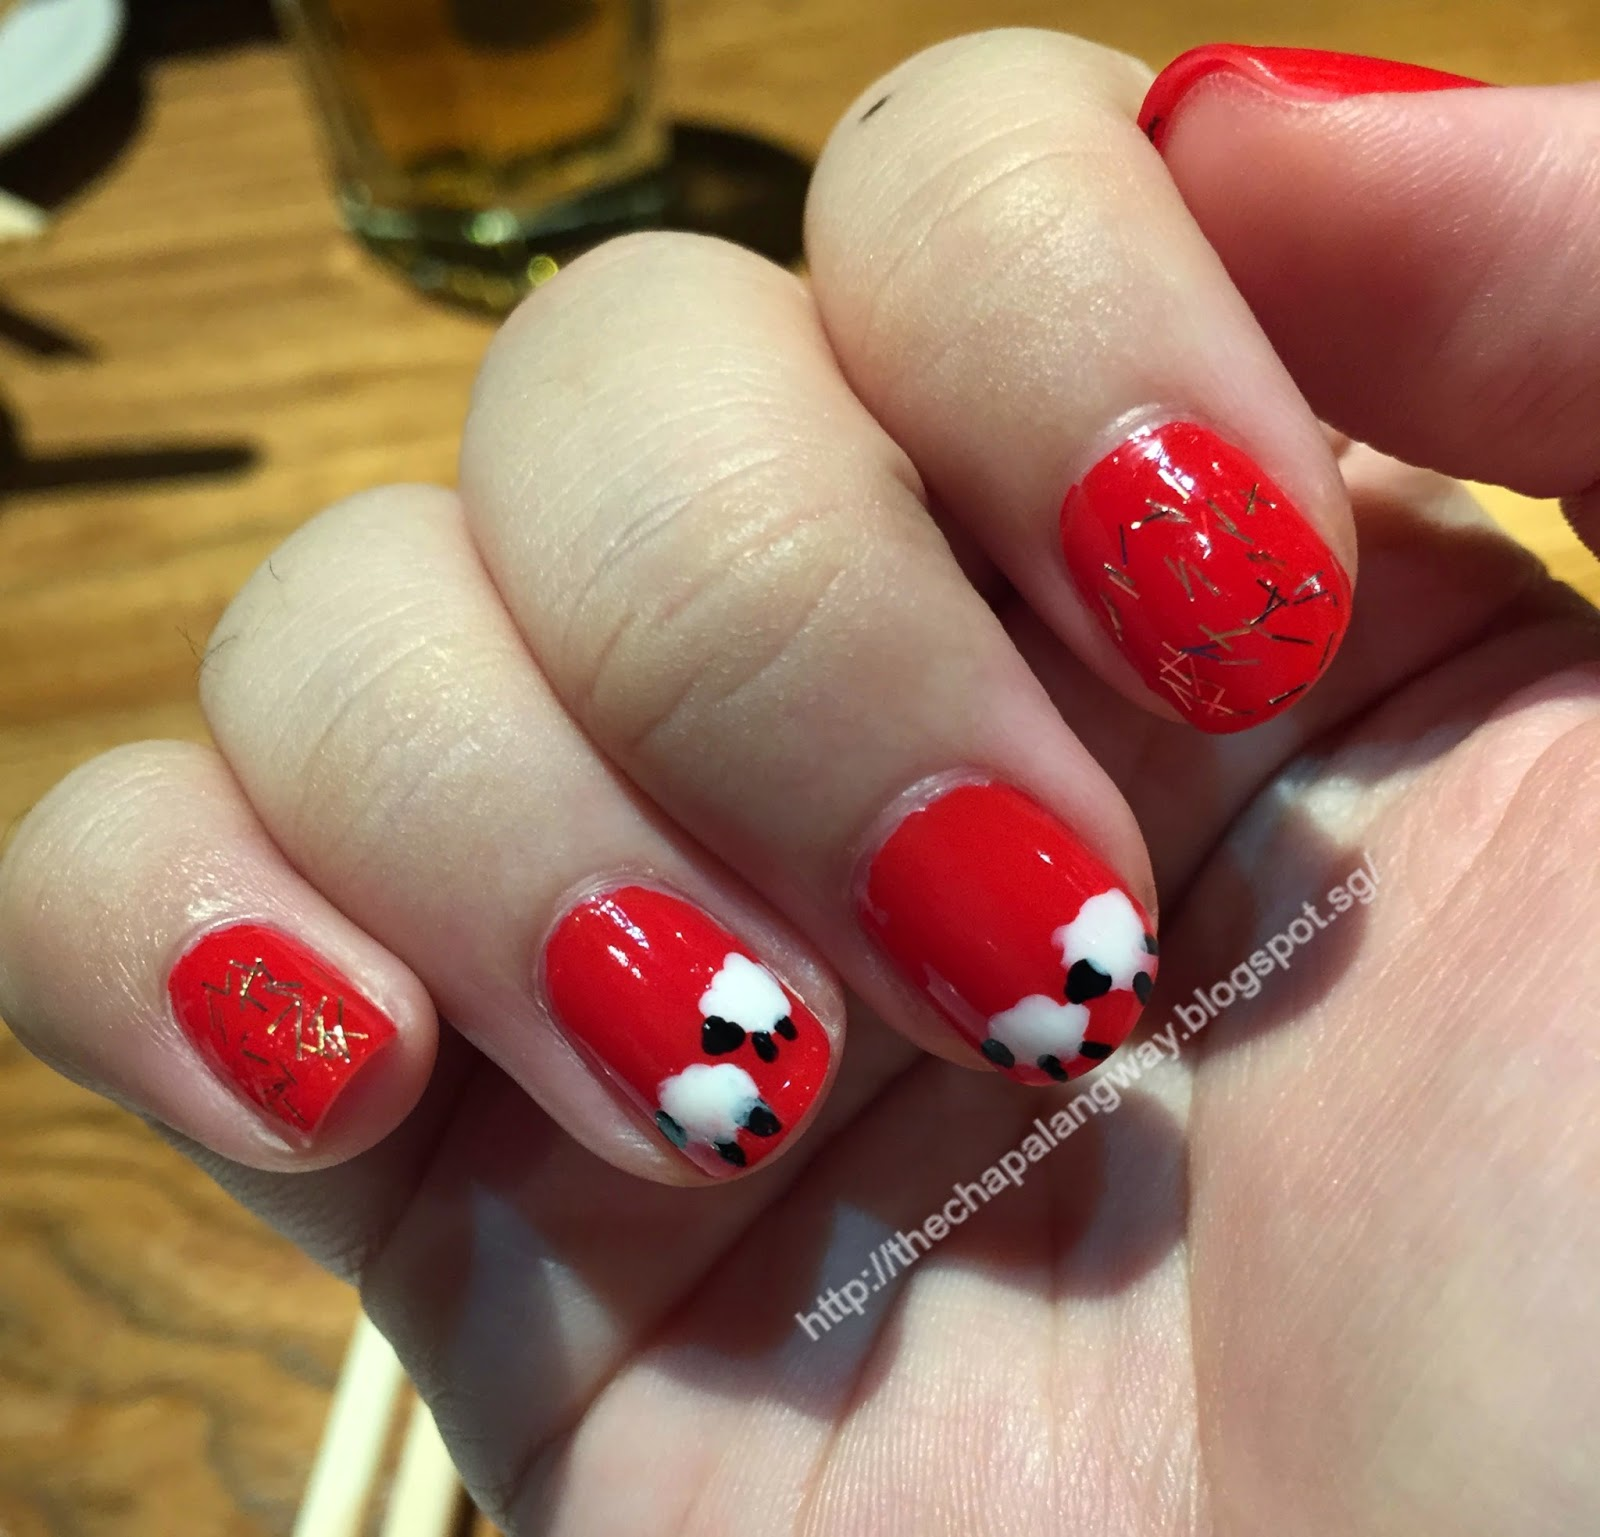 sheep design nails,red, sally hansen red snapper,simple nail design, cute nails